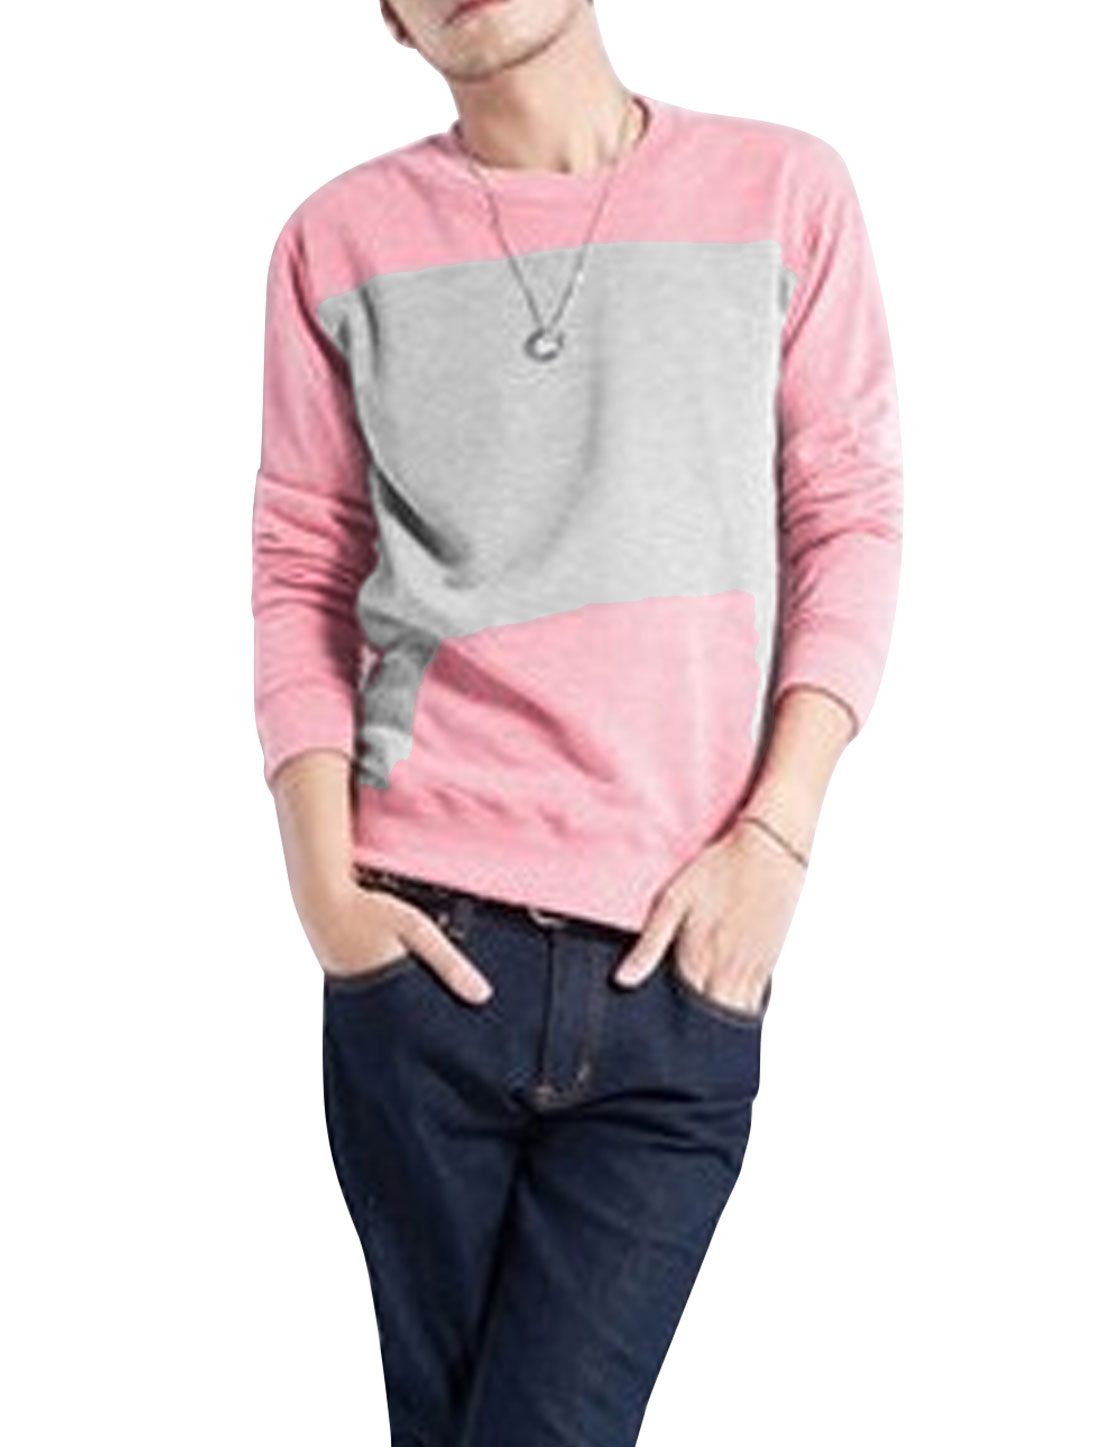 Men Round Neckline Color Block Slim Fit Casual T-Shirt Pink Light Gray M